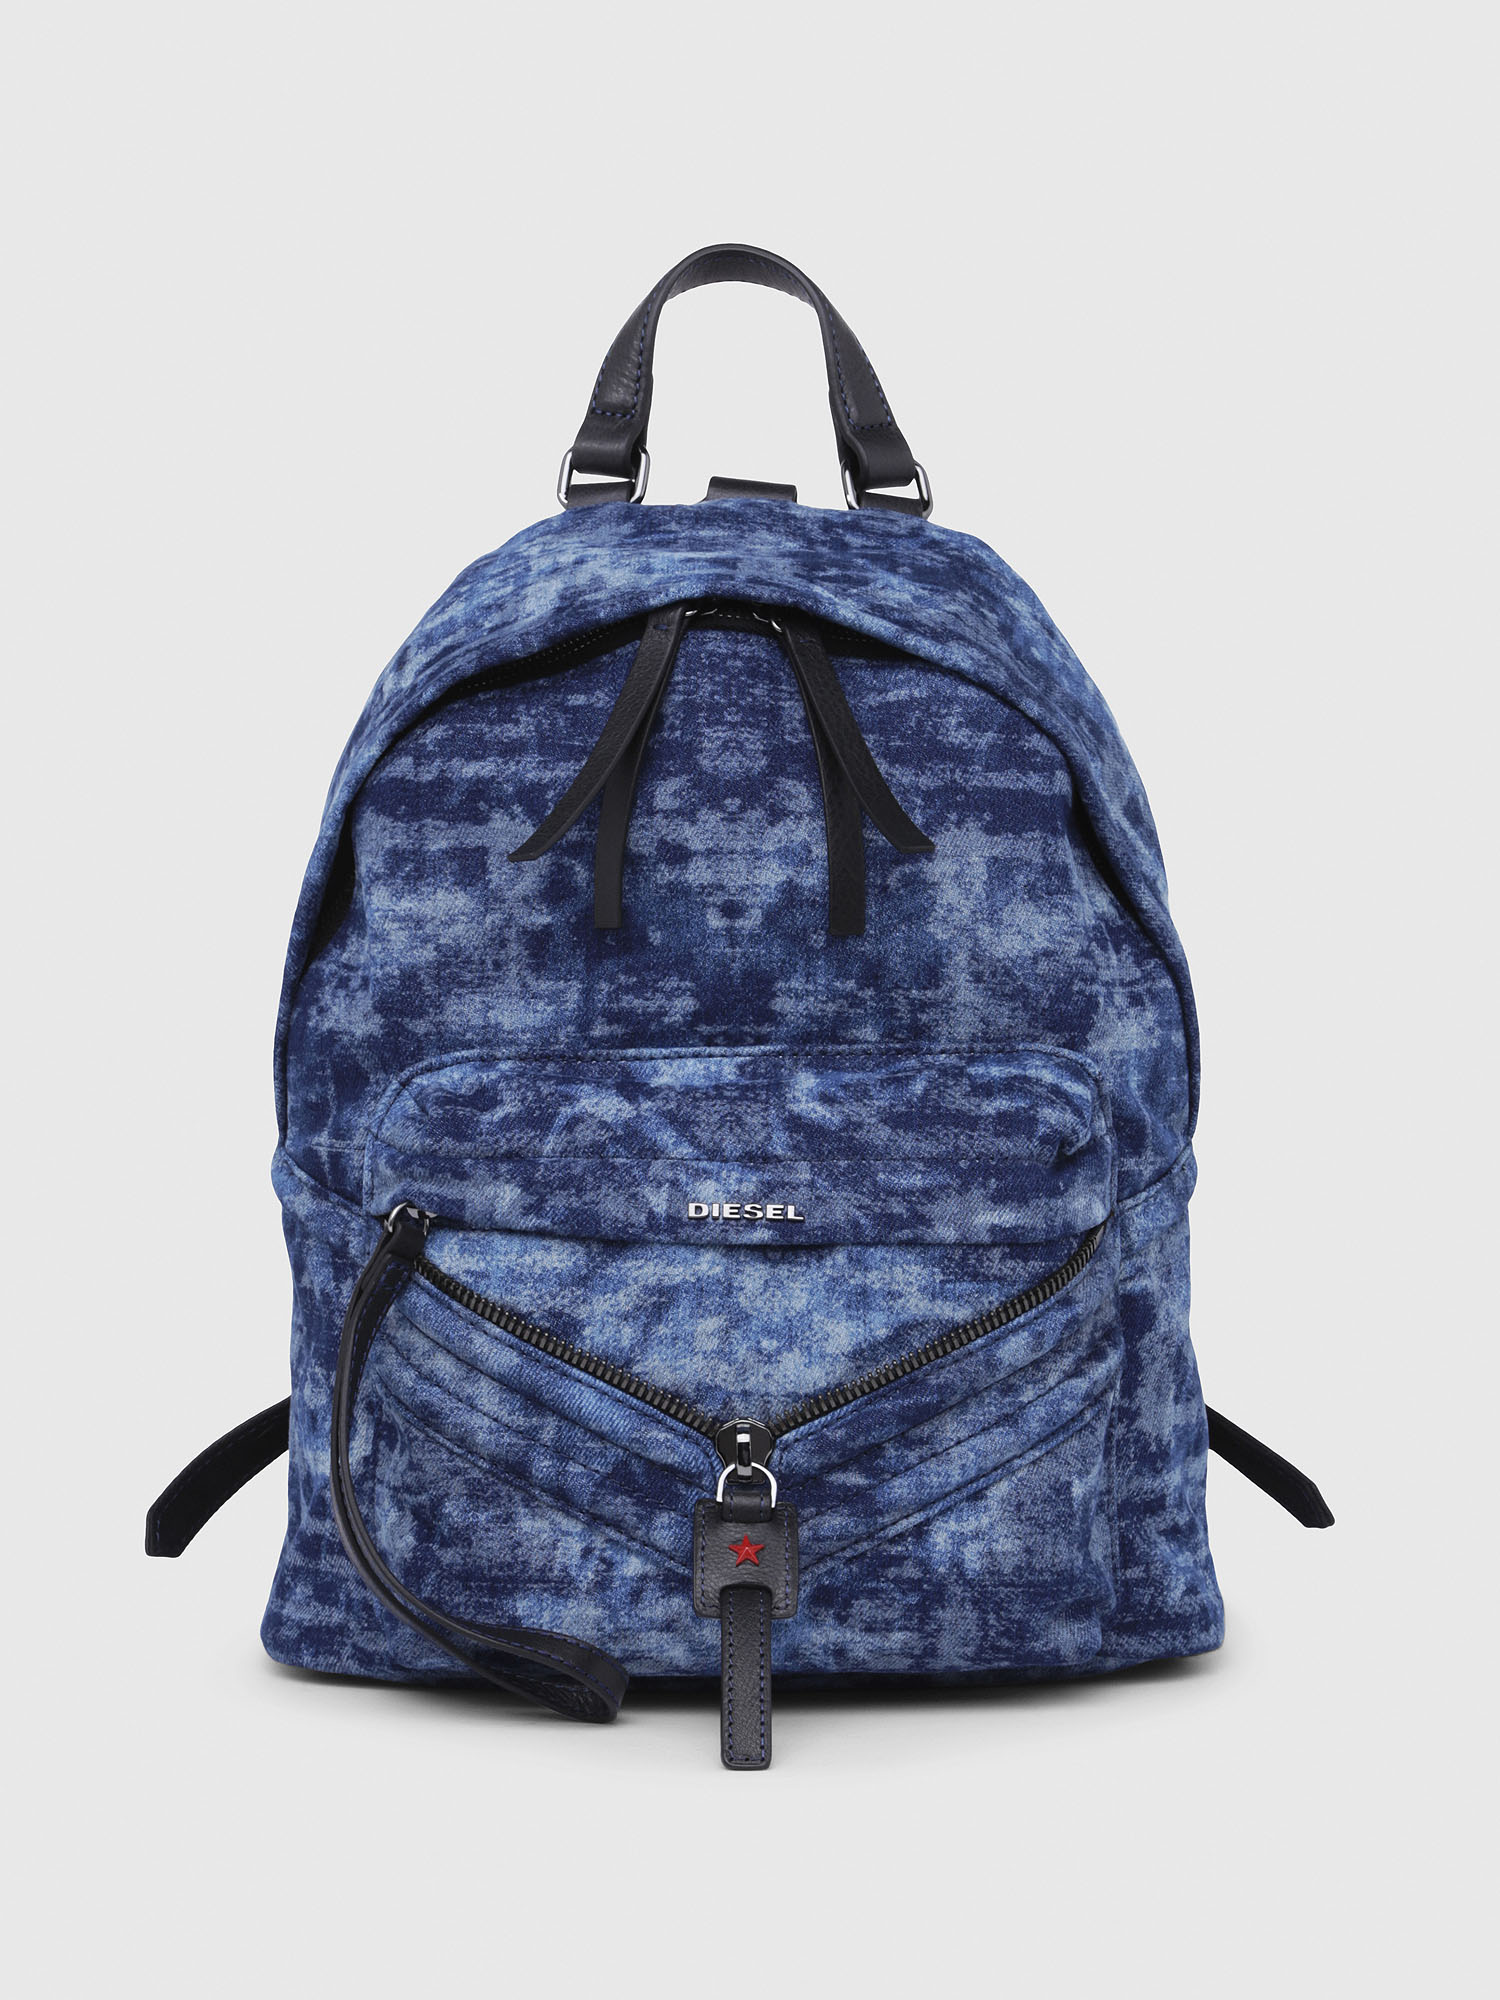 Diesel - LE-ZIPPER BACKPACK,  - Backpacks - Image 1